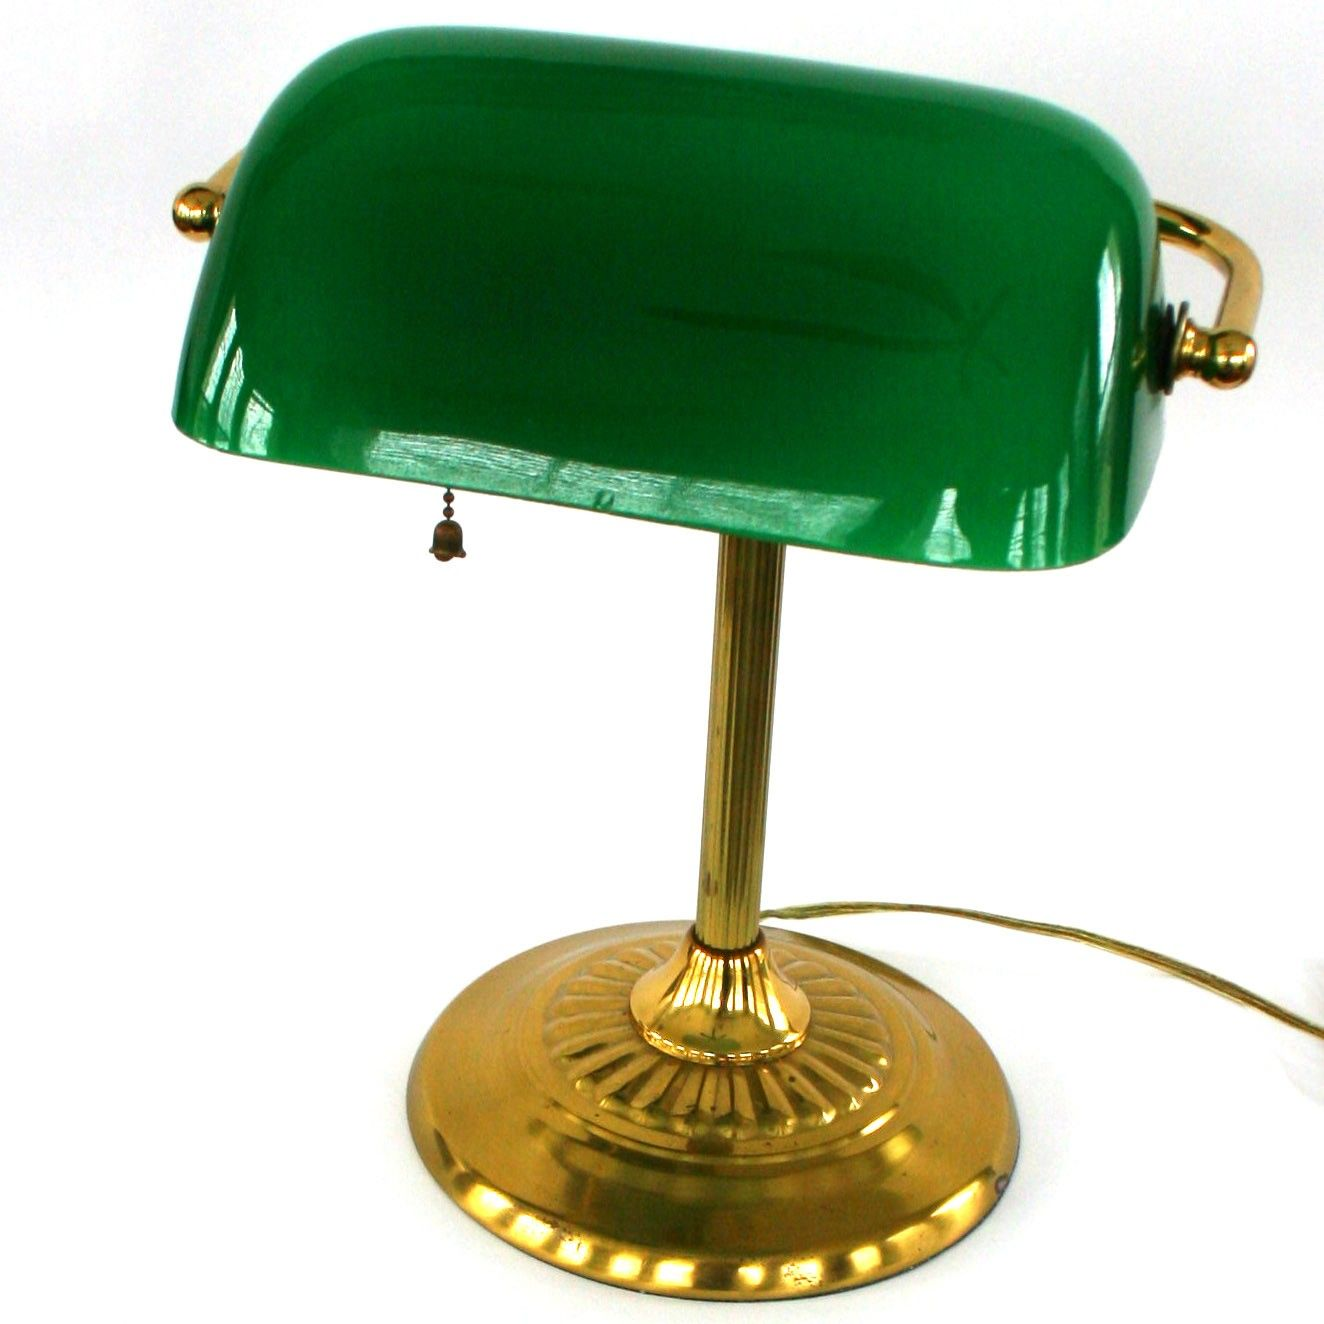 Old school banker lamp likes list pinterest bankers lamp desk vintage bankers lamp brass glass kelly green emerald home office desktop library decor bedside table light industrial eclectic sophisticated aloadofball Images